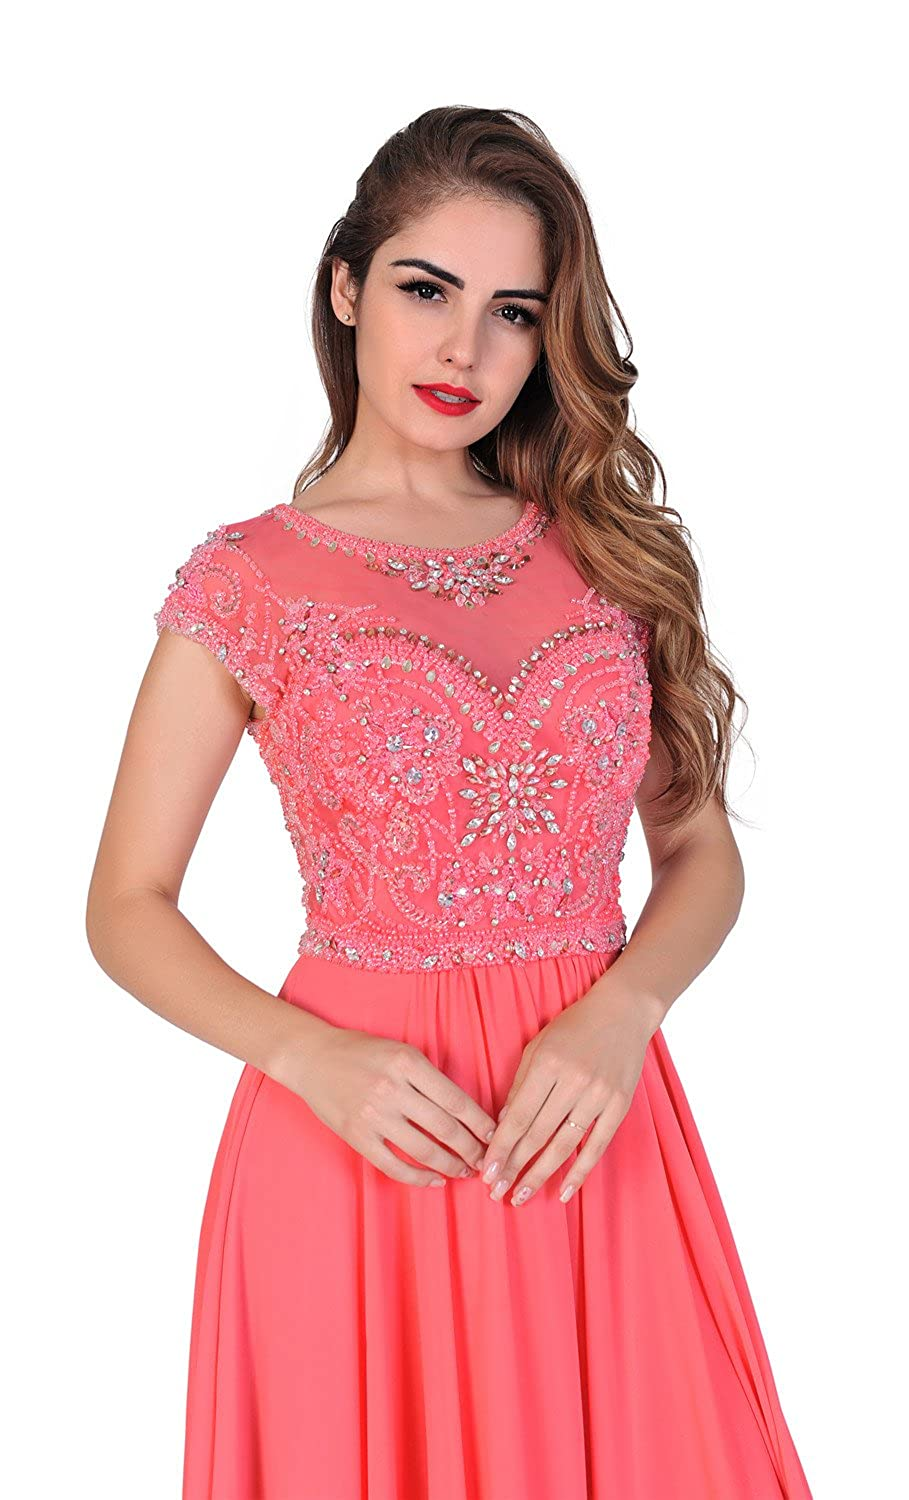 Amazon.com: Chic Belle Women Prom Dresses Long Formal Evening Gowns Chiffon Beaded Coral: Clothing